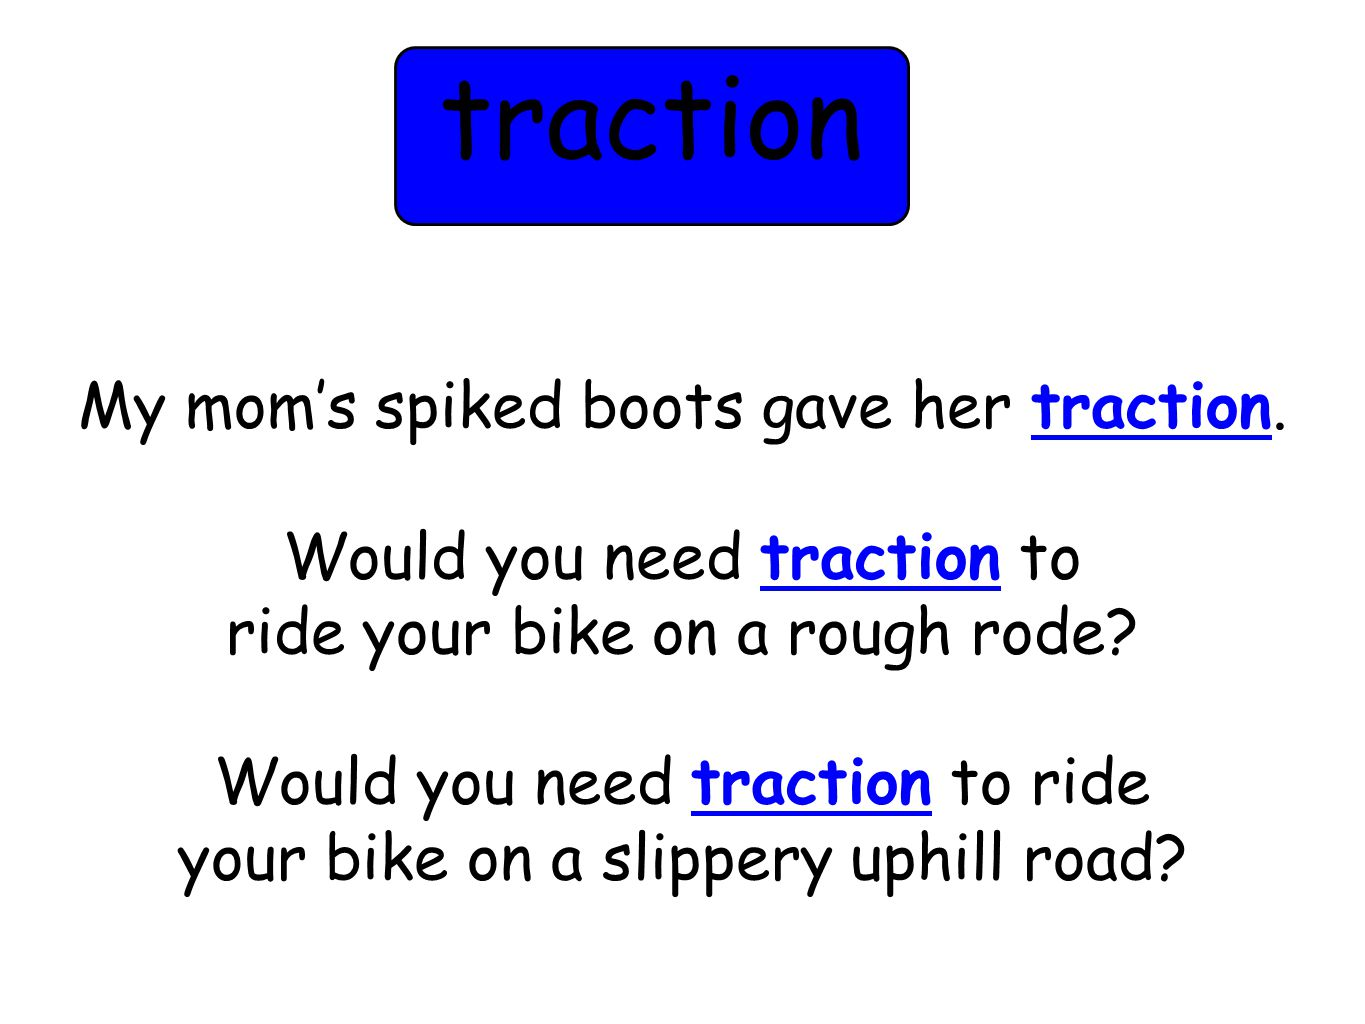 My mom's spiked boots gave her traction. Would you need traction to ride your bike on a rough rode.